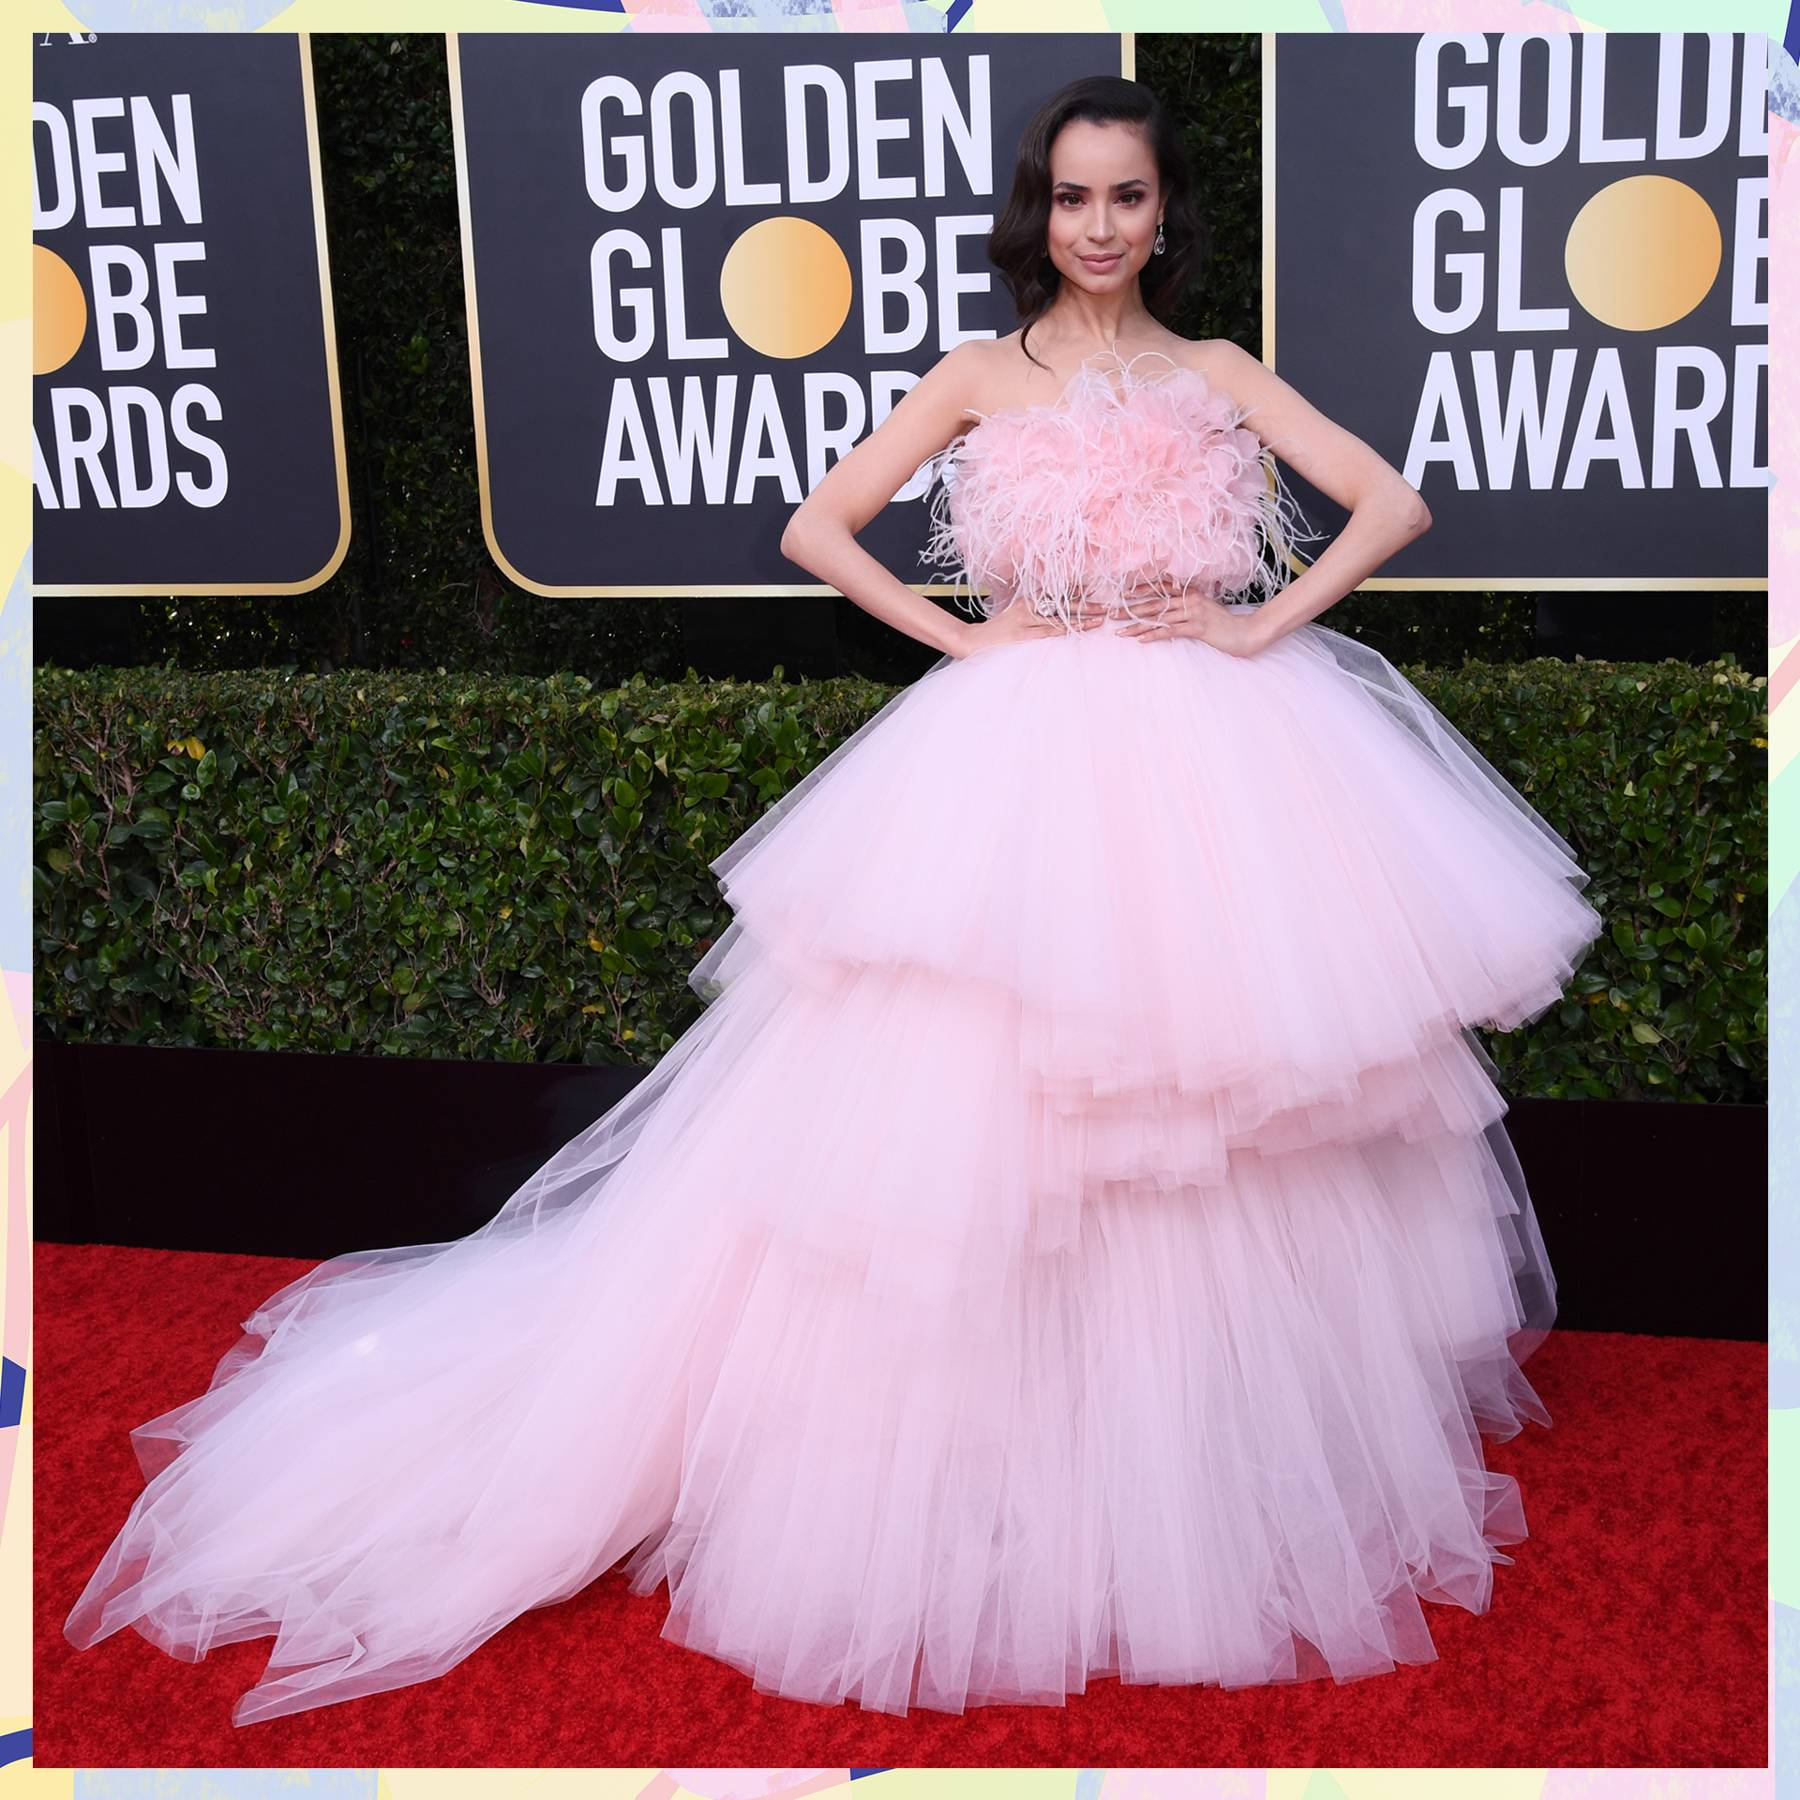 Our Fashion Editor's run down of the Golden Globes dresses worth seeing (and re-seeing!) from tonight's epic red carpet